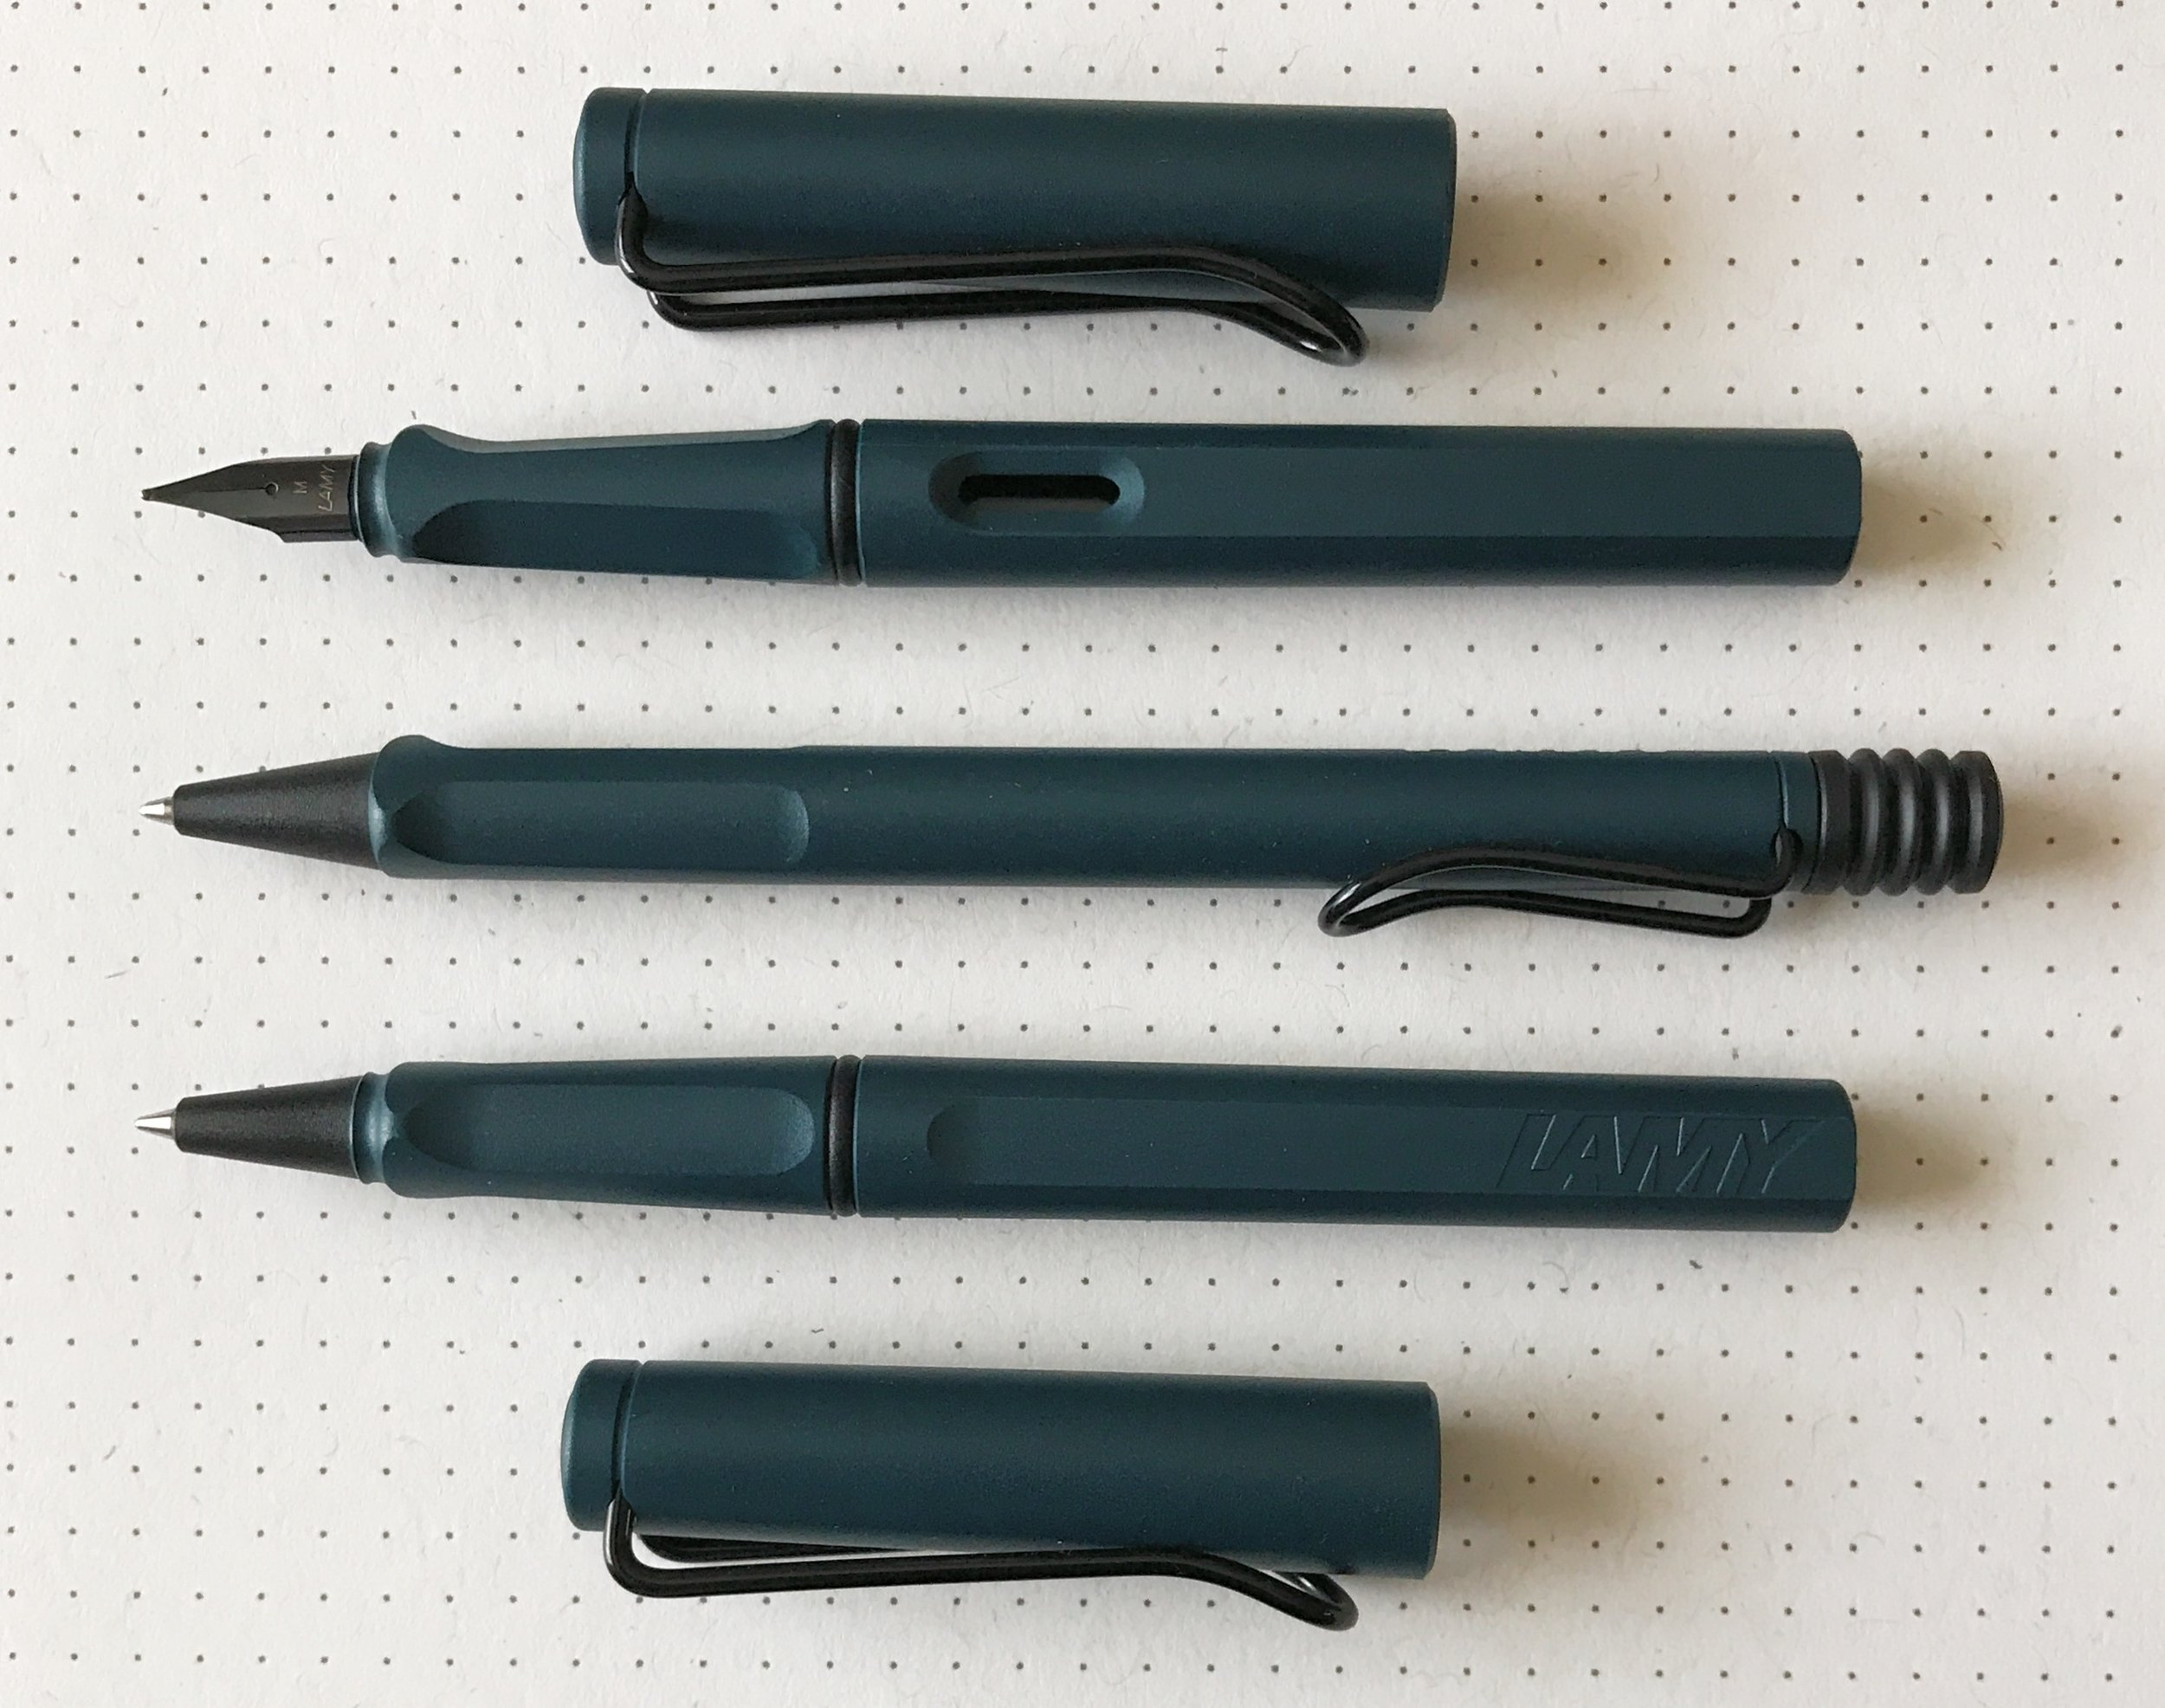 Lamy Safari Petrol Fountain Pen Rollerball And Ballpoint Pen Giveaway The Pen Addict